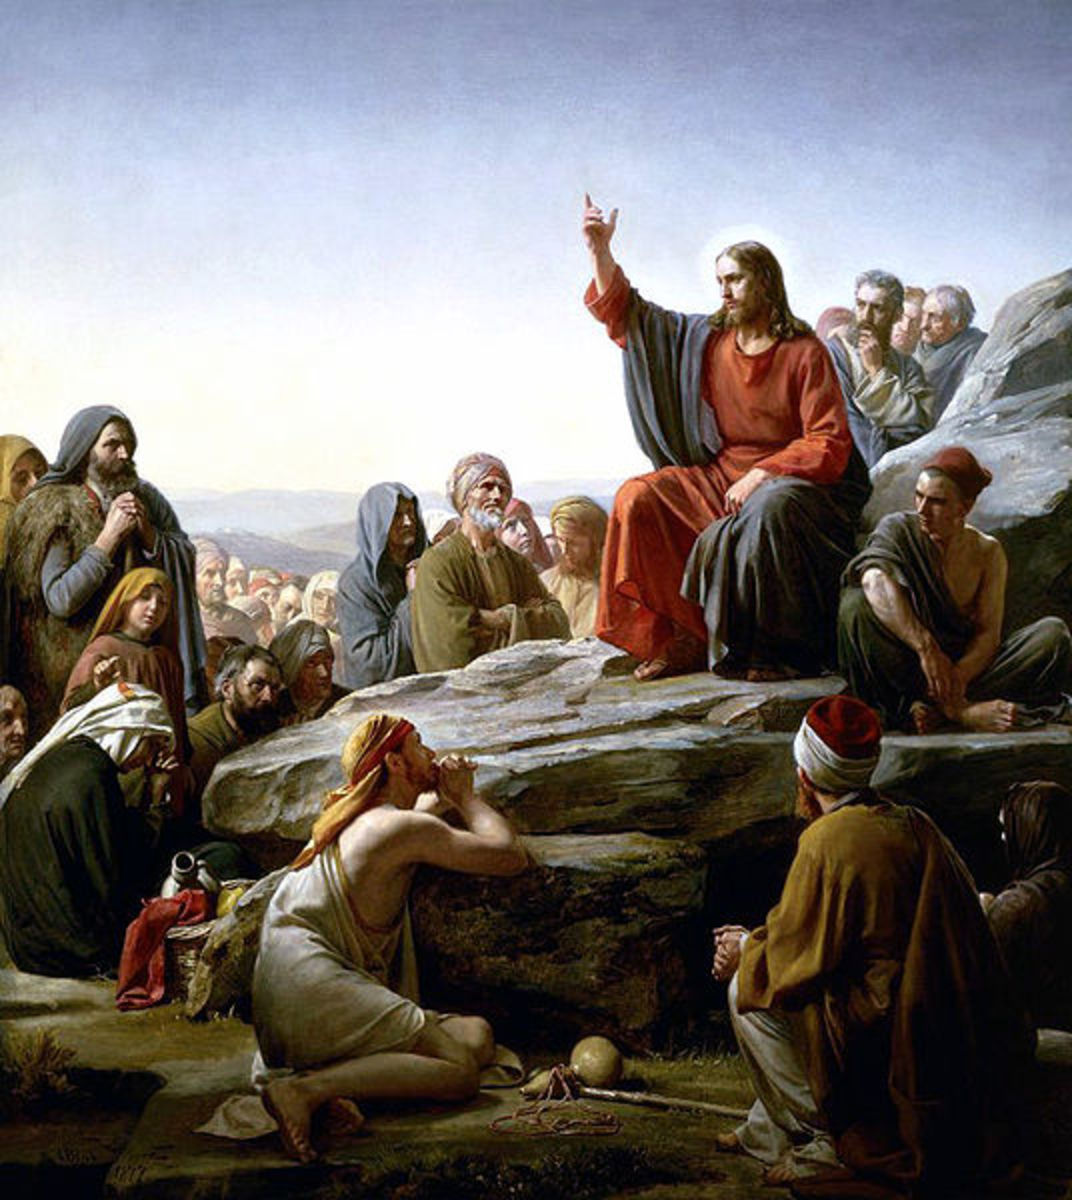 The founder of Christianity. A painting of the Sermon on the Mount, by nineteenth century artist.